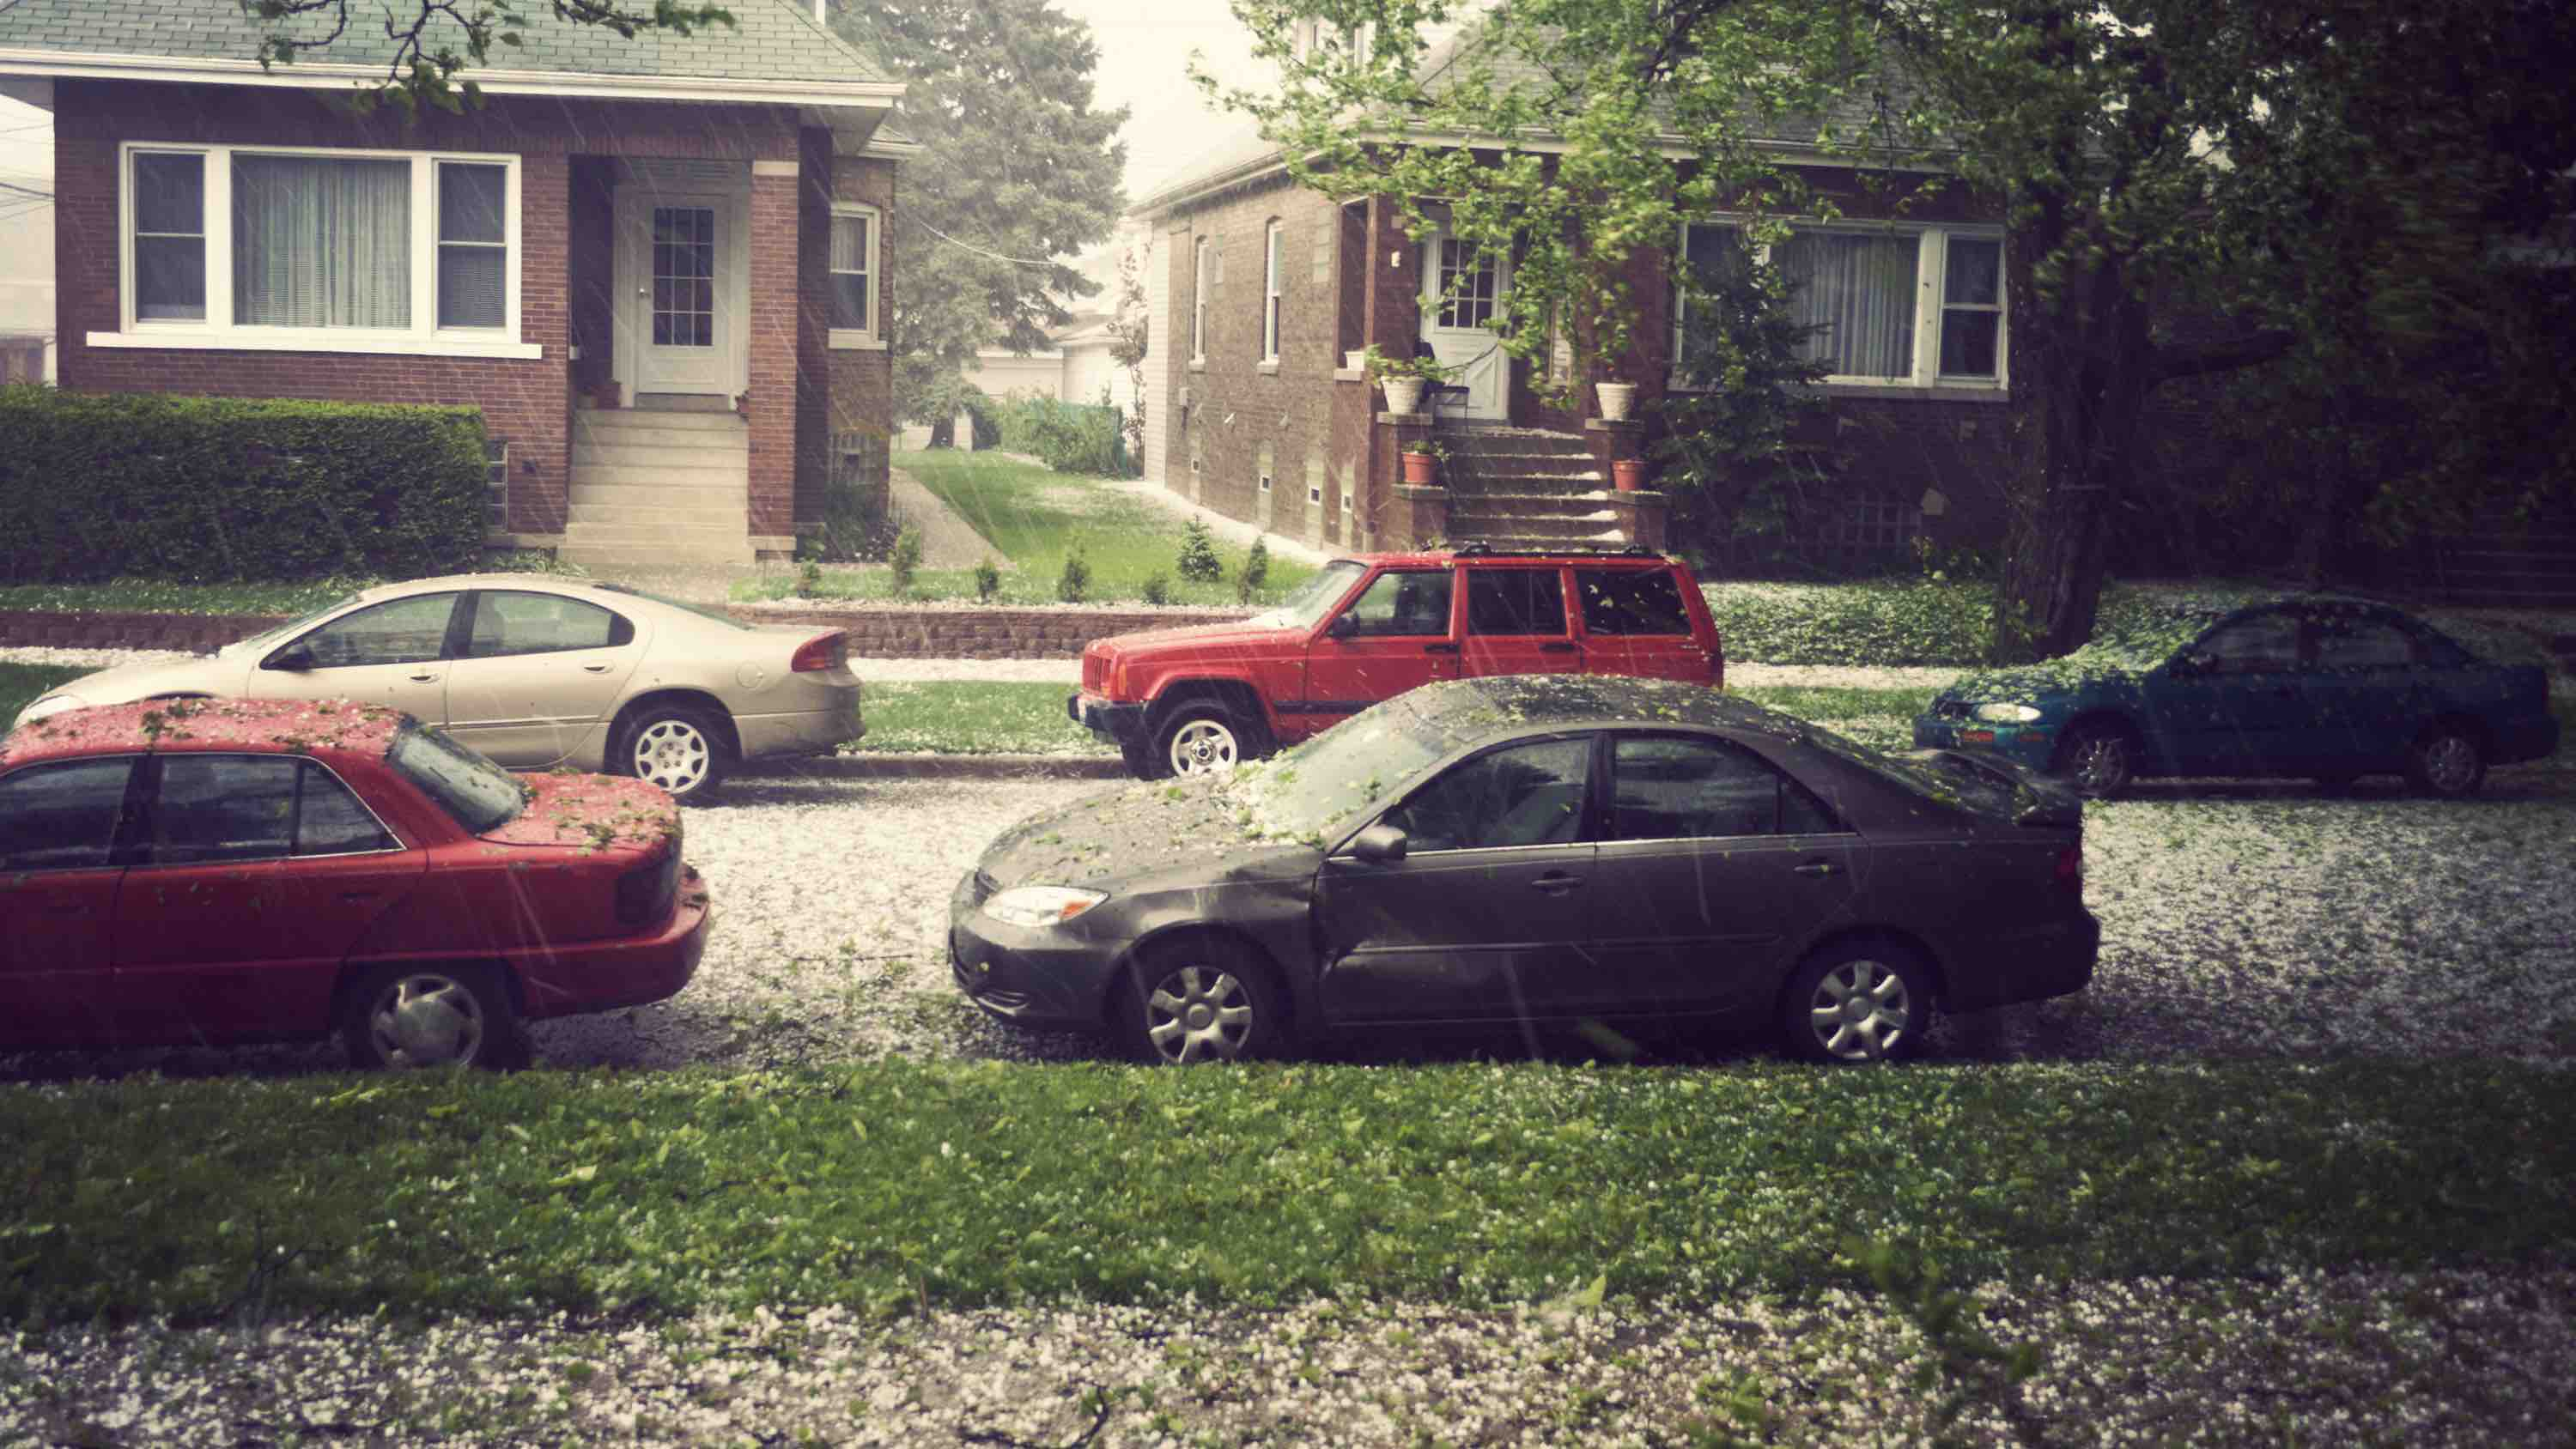 Hail hitting houses and cars during storm season with large volume of insurance claims.